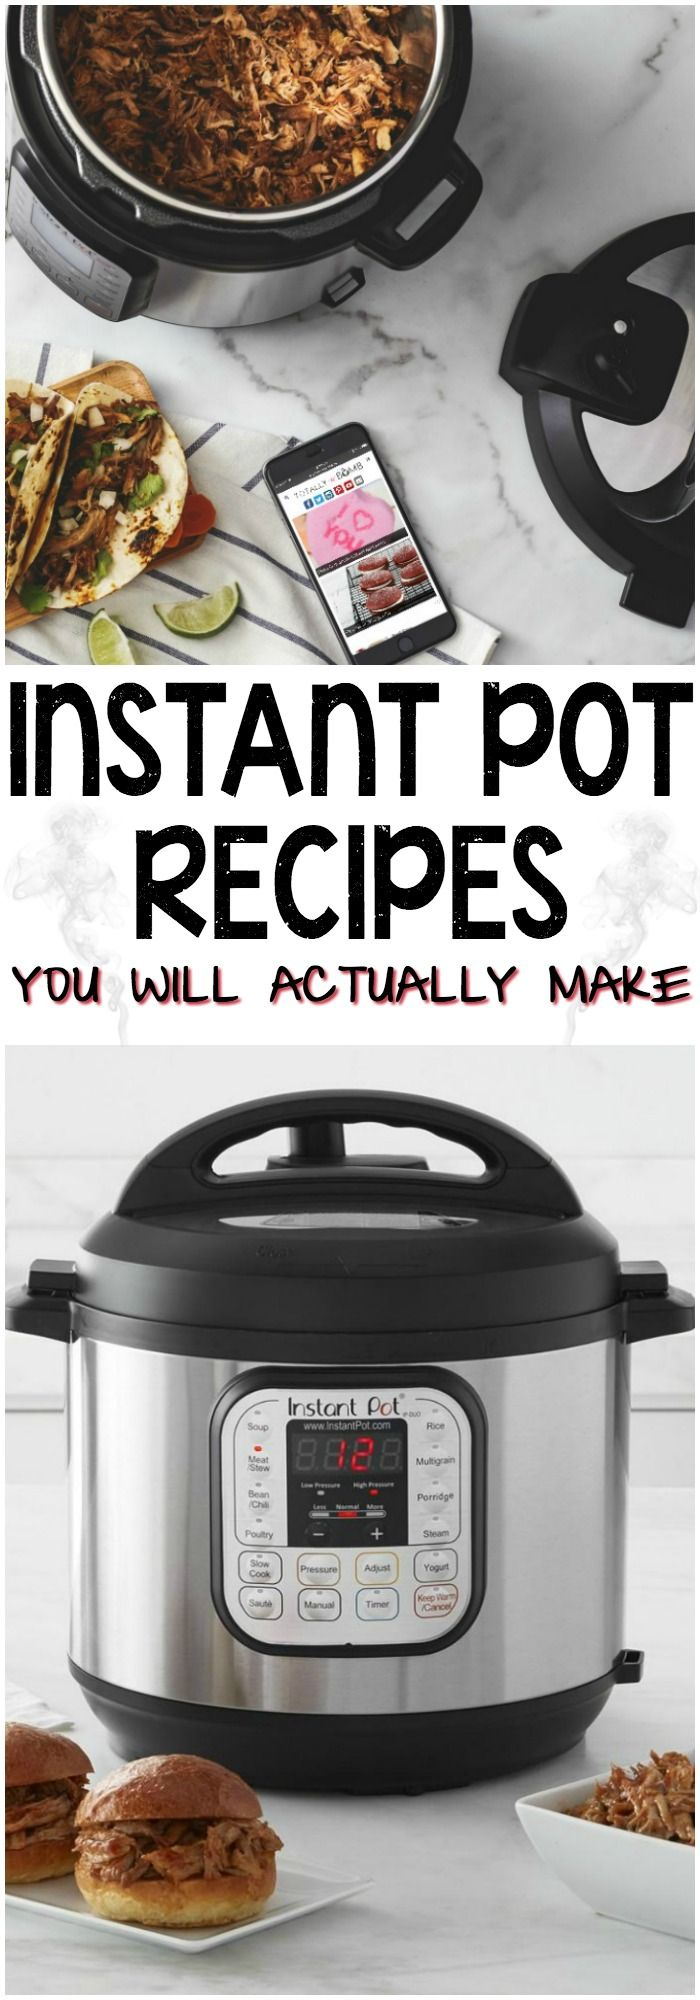 Fast food doesn't have to come from a drive-thru window. These 25 Instant Pot recipes are fast recipes you will actually make! Enjoy! | #InstantPot #Instapot #pressurecooker #pressurecooking #fastfood #recipes #pressure #steam #favorites #familyfavorites